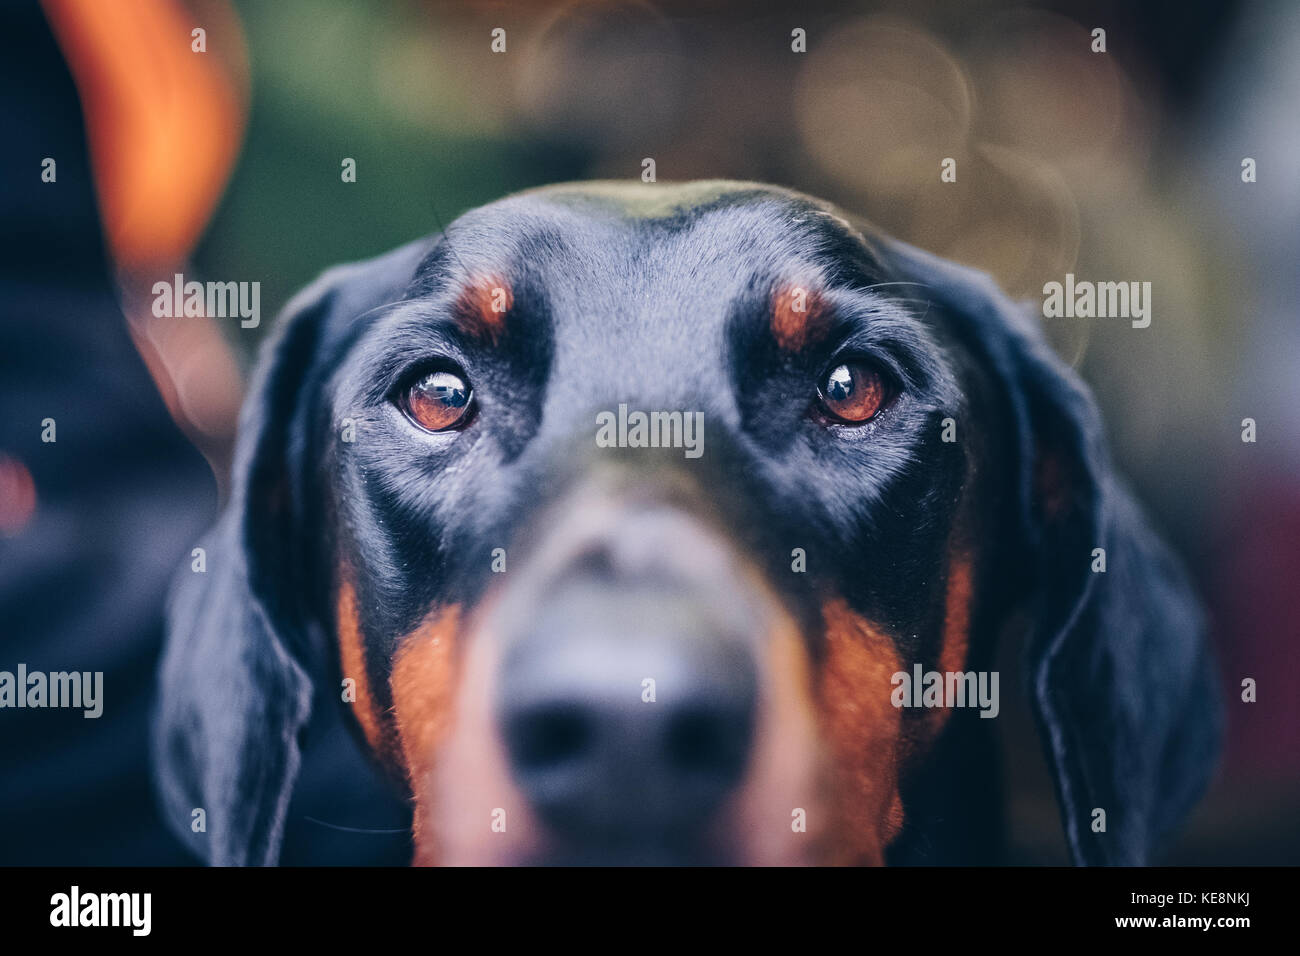 Male doberman dog looks into the camera - Stock Image